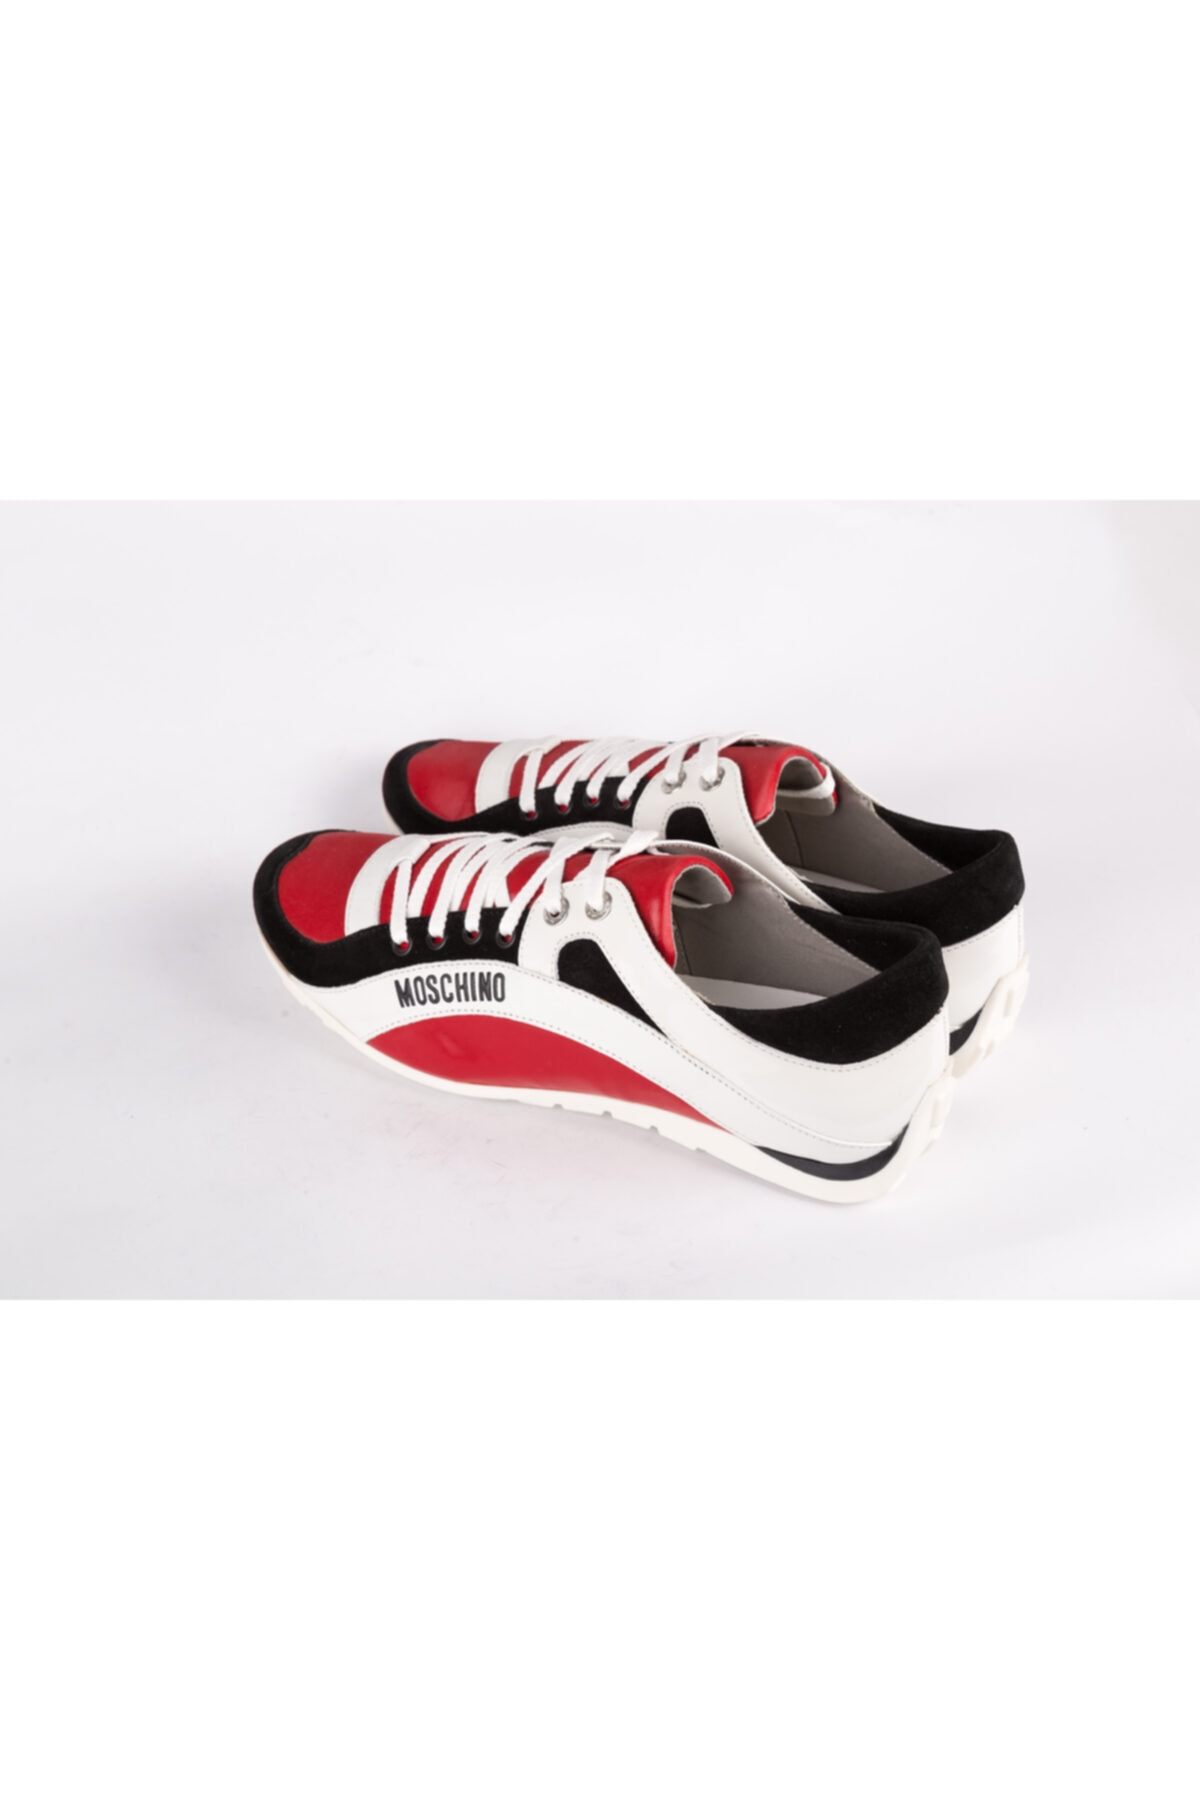 Moschino Sneakers 2